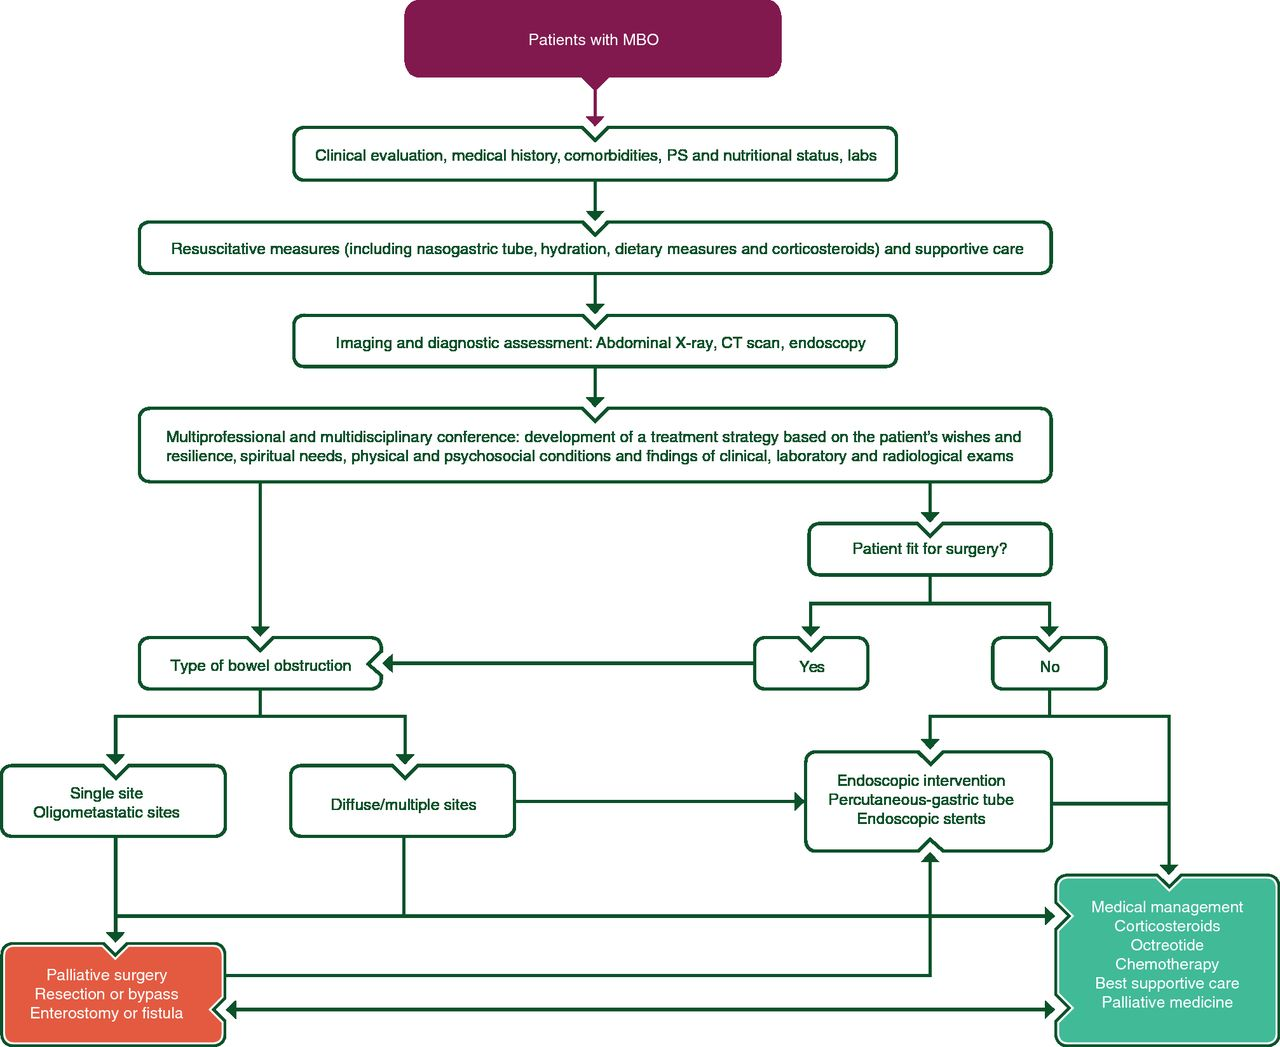 ESMO–ESGO consensus conference recommendations on ovarian